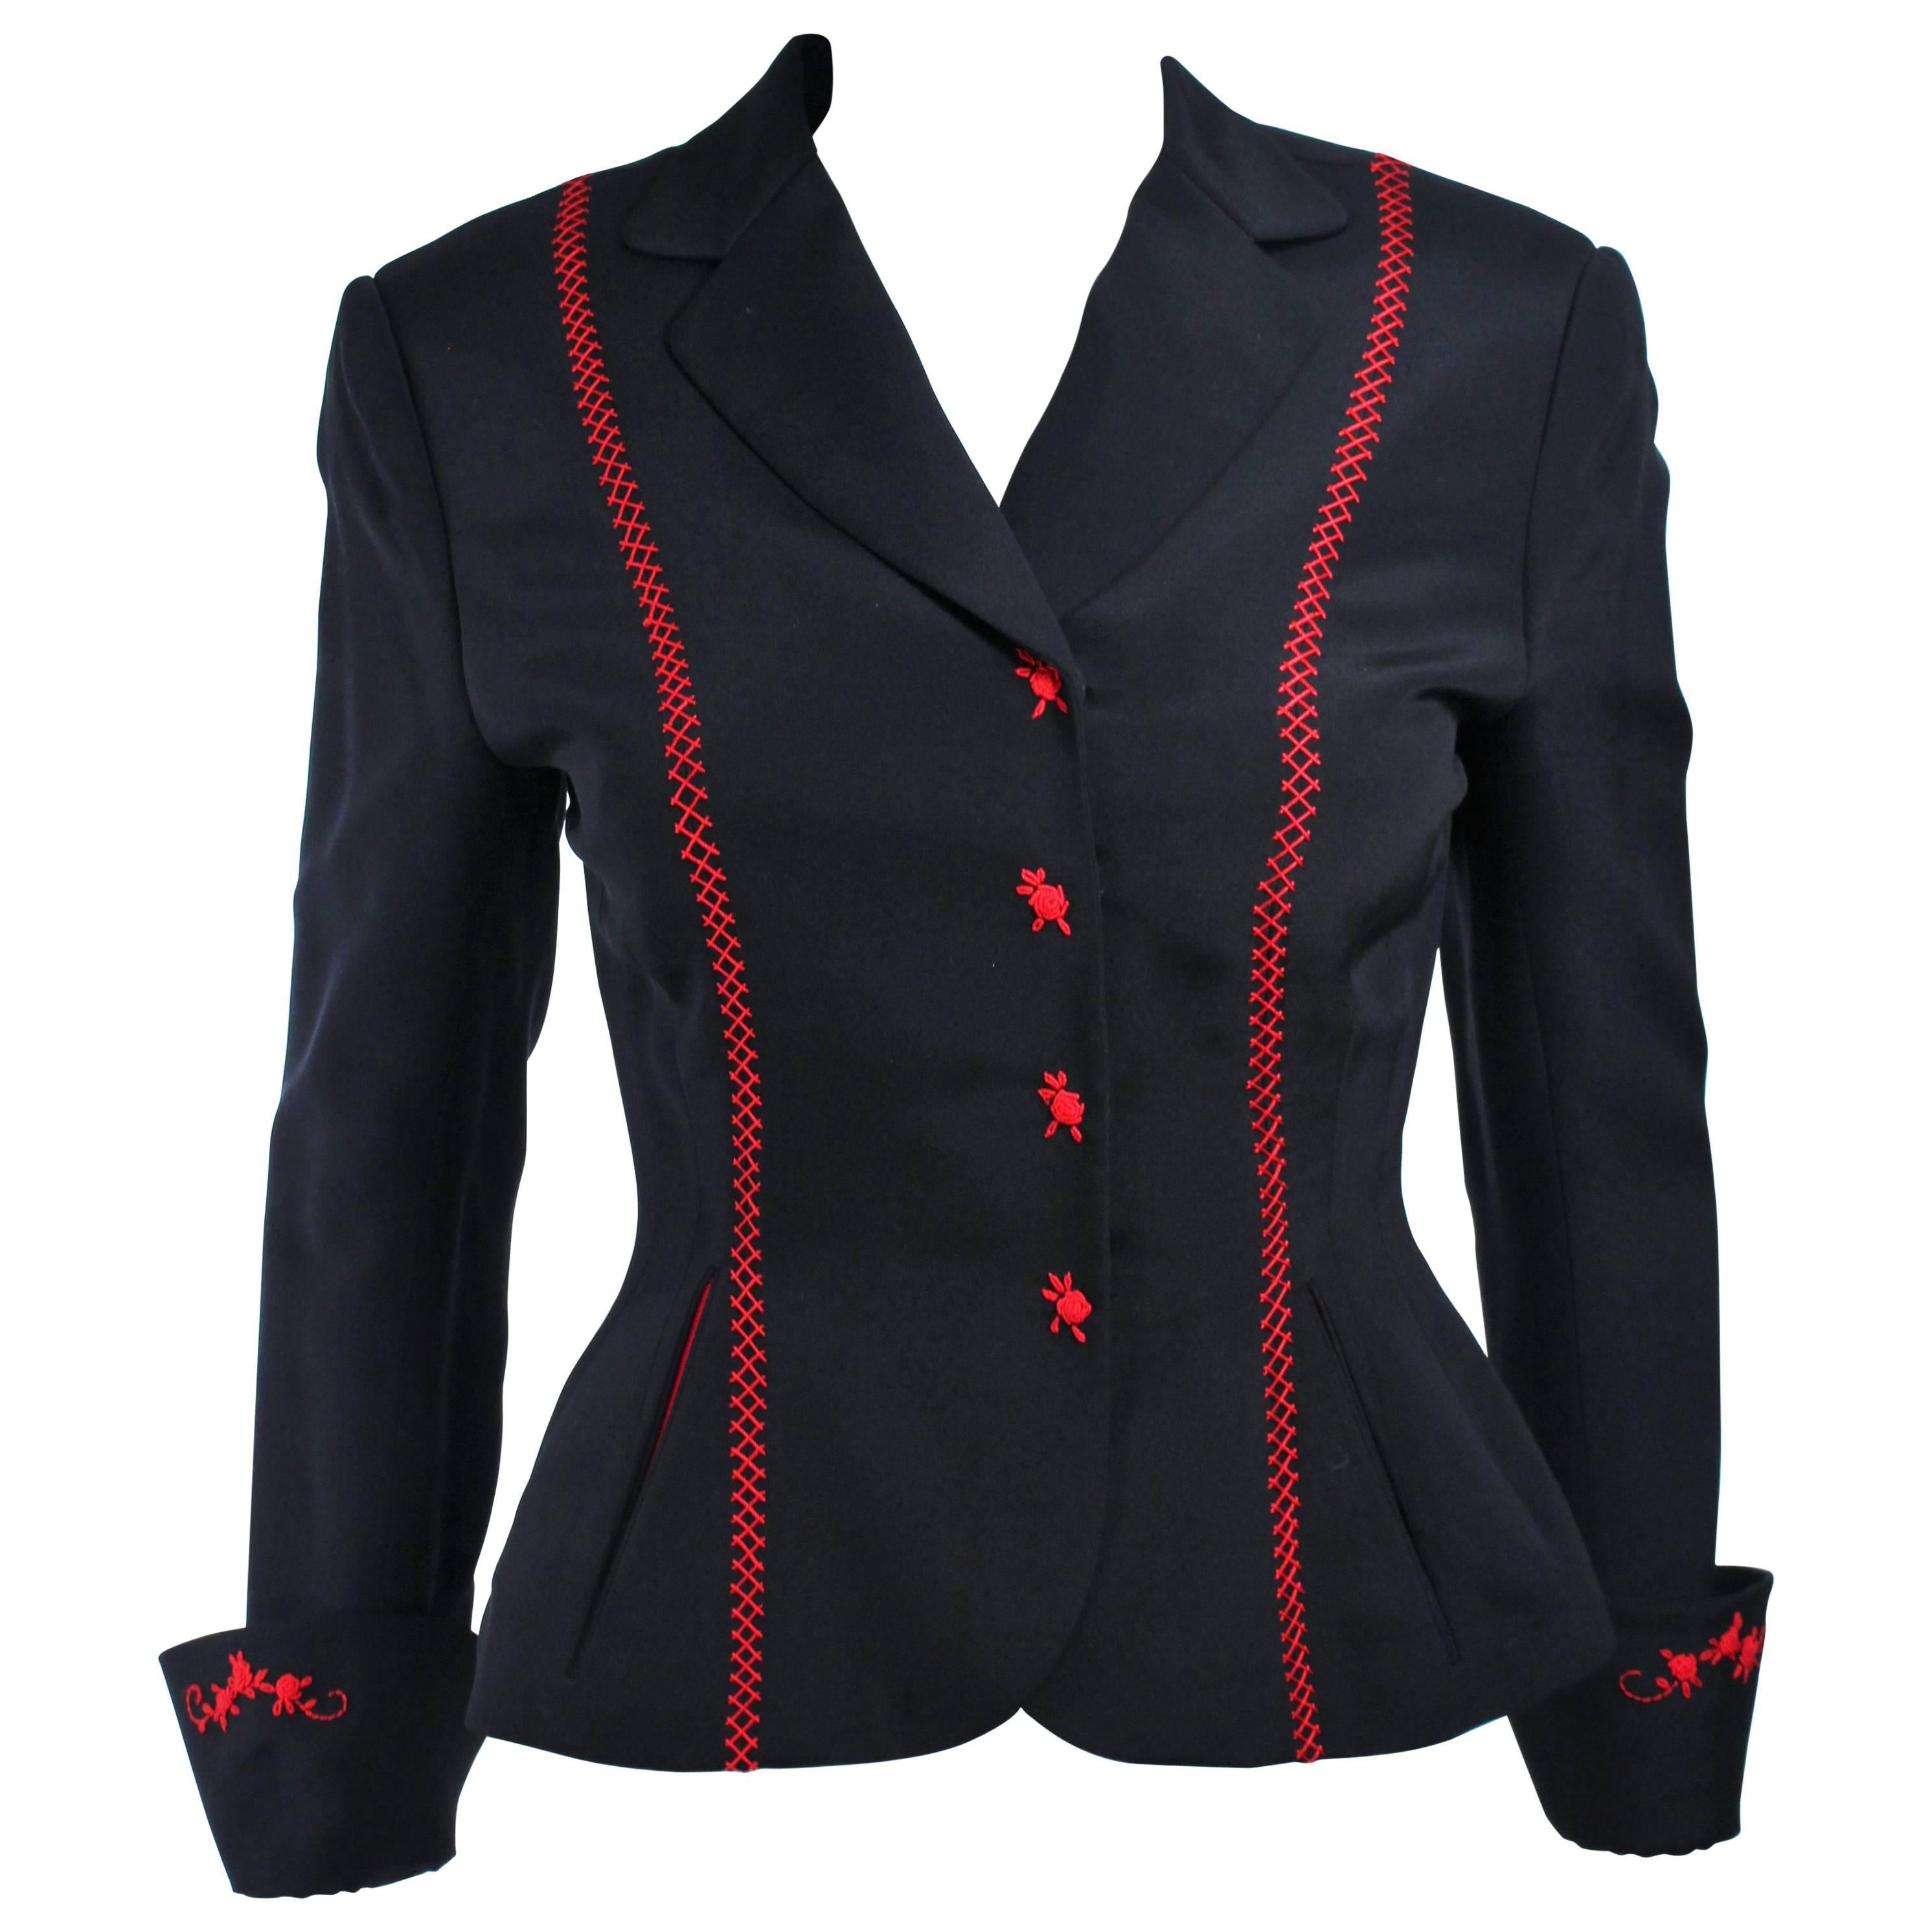 RICHARD TYLER Black and Red Fitted Jacket with Floral Pattern Size 2 4